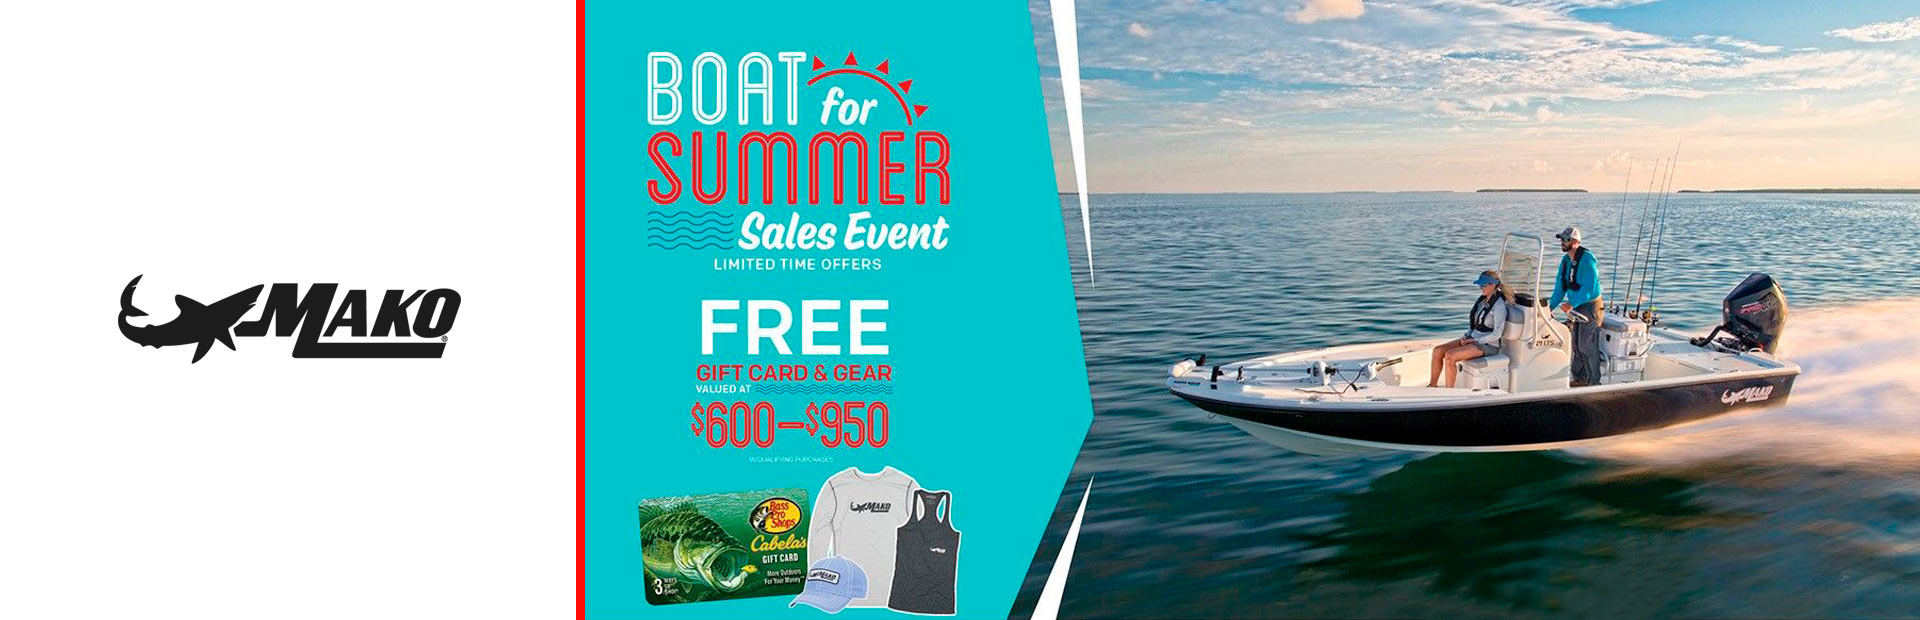 Mako: Boat For Summer Sales Event